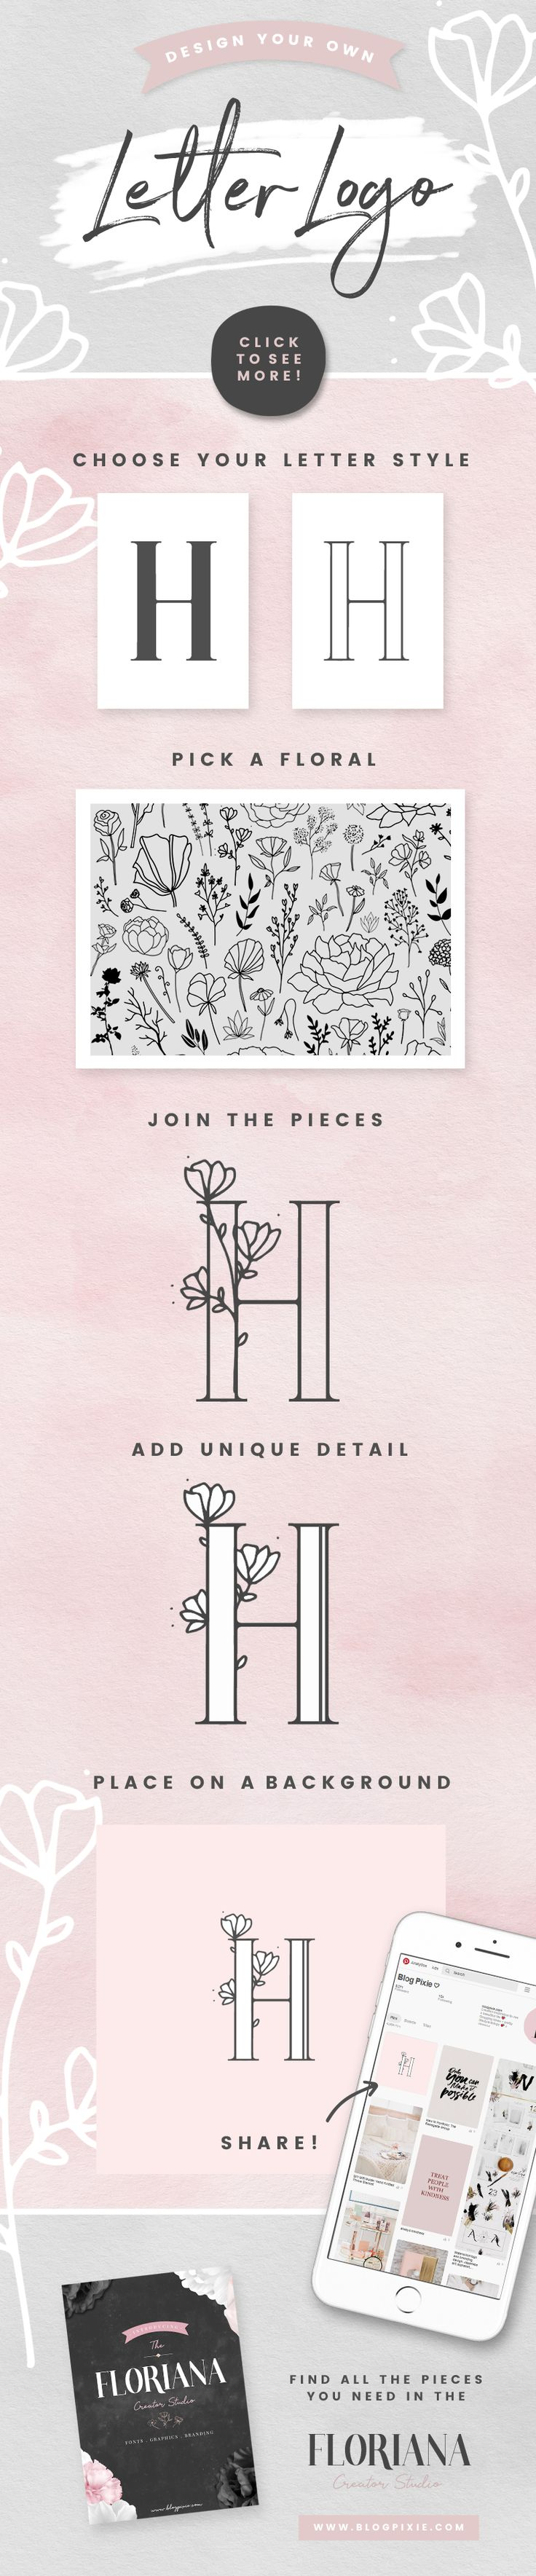 How to design your own single letter logo with a flower illustration. Creative alphabet design inspiration, fonts and floral illustrations for blog, branding and logos. Find the Floriana Creator Studio on Creative Market.